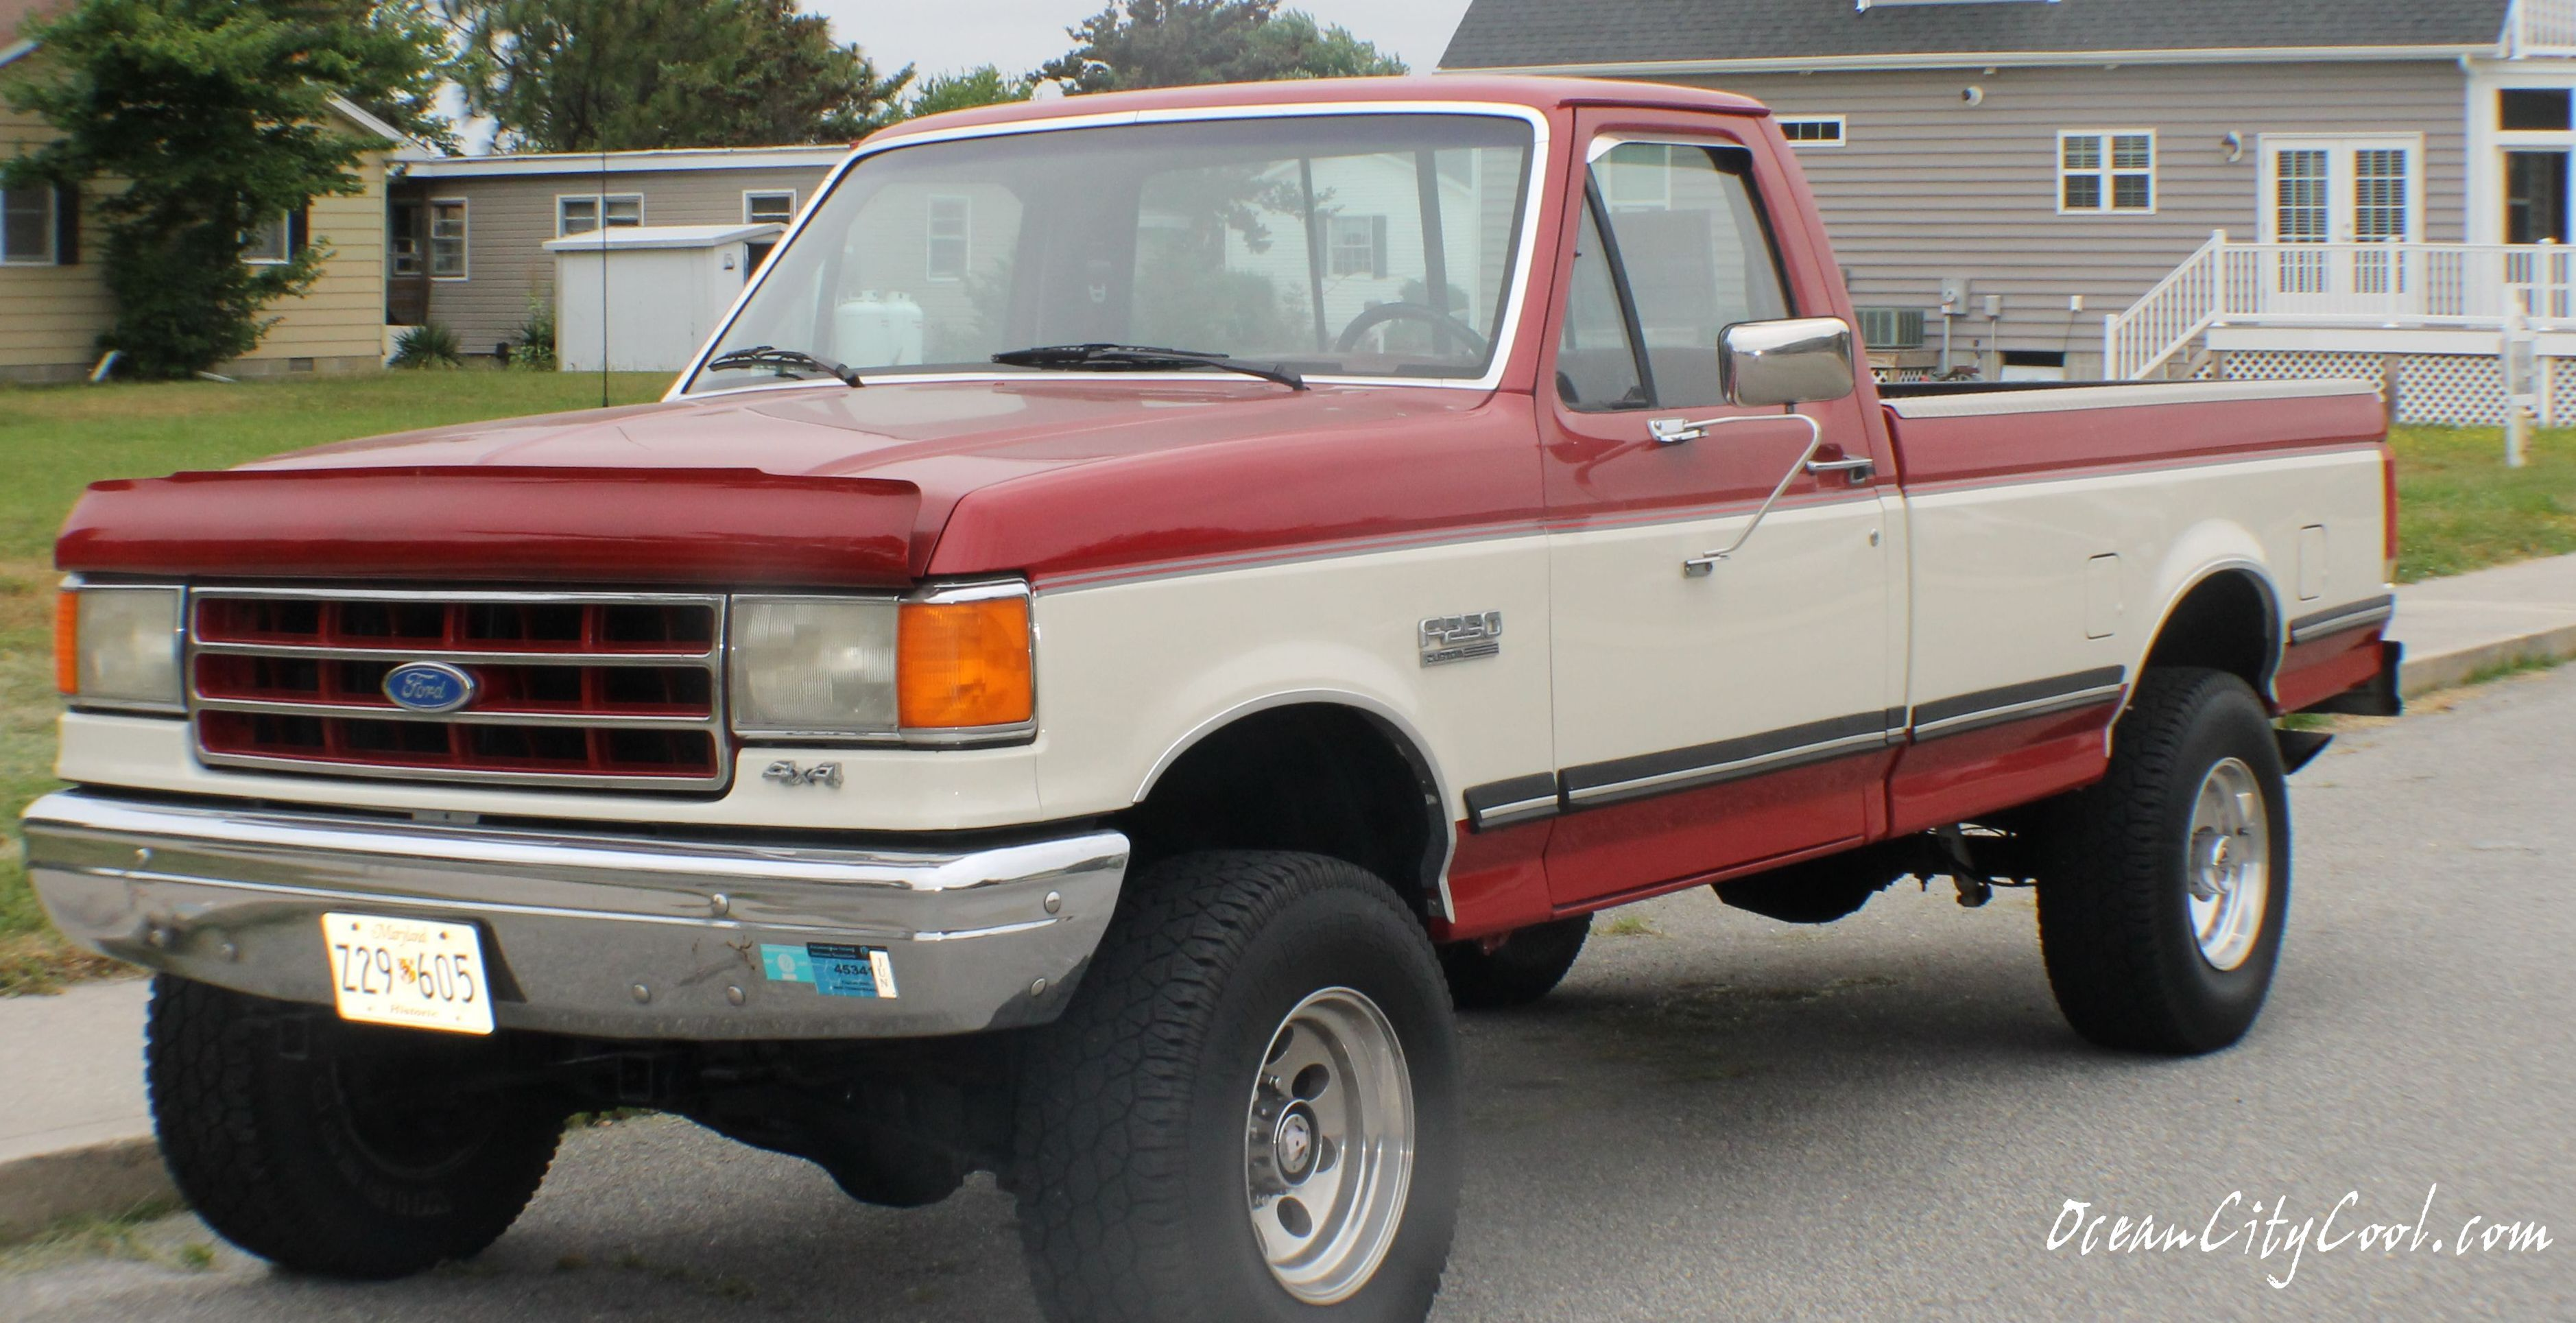 historic 1988 ford f250 4x4 click pix to learn more. Black Bedroom Furniture Sets. Home Design Ideas